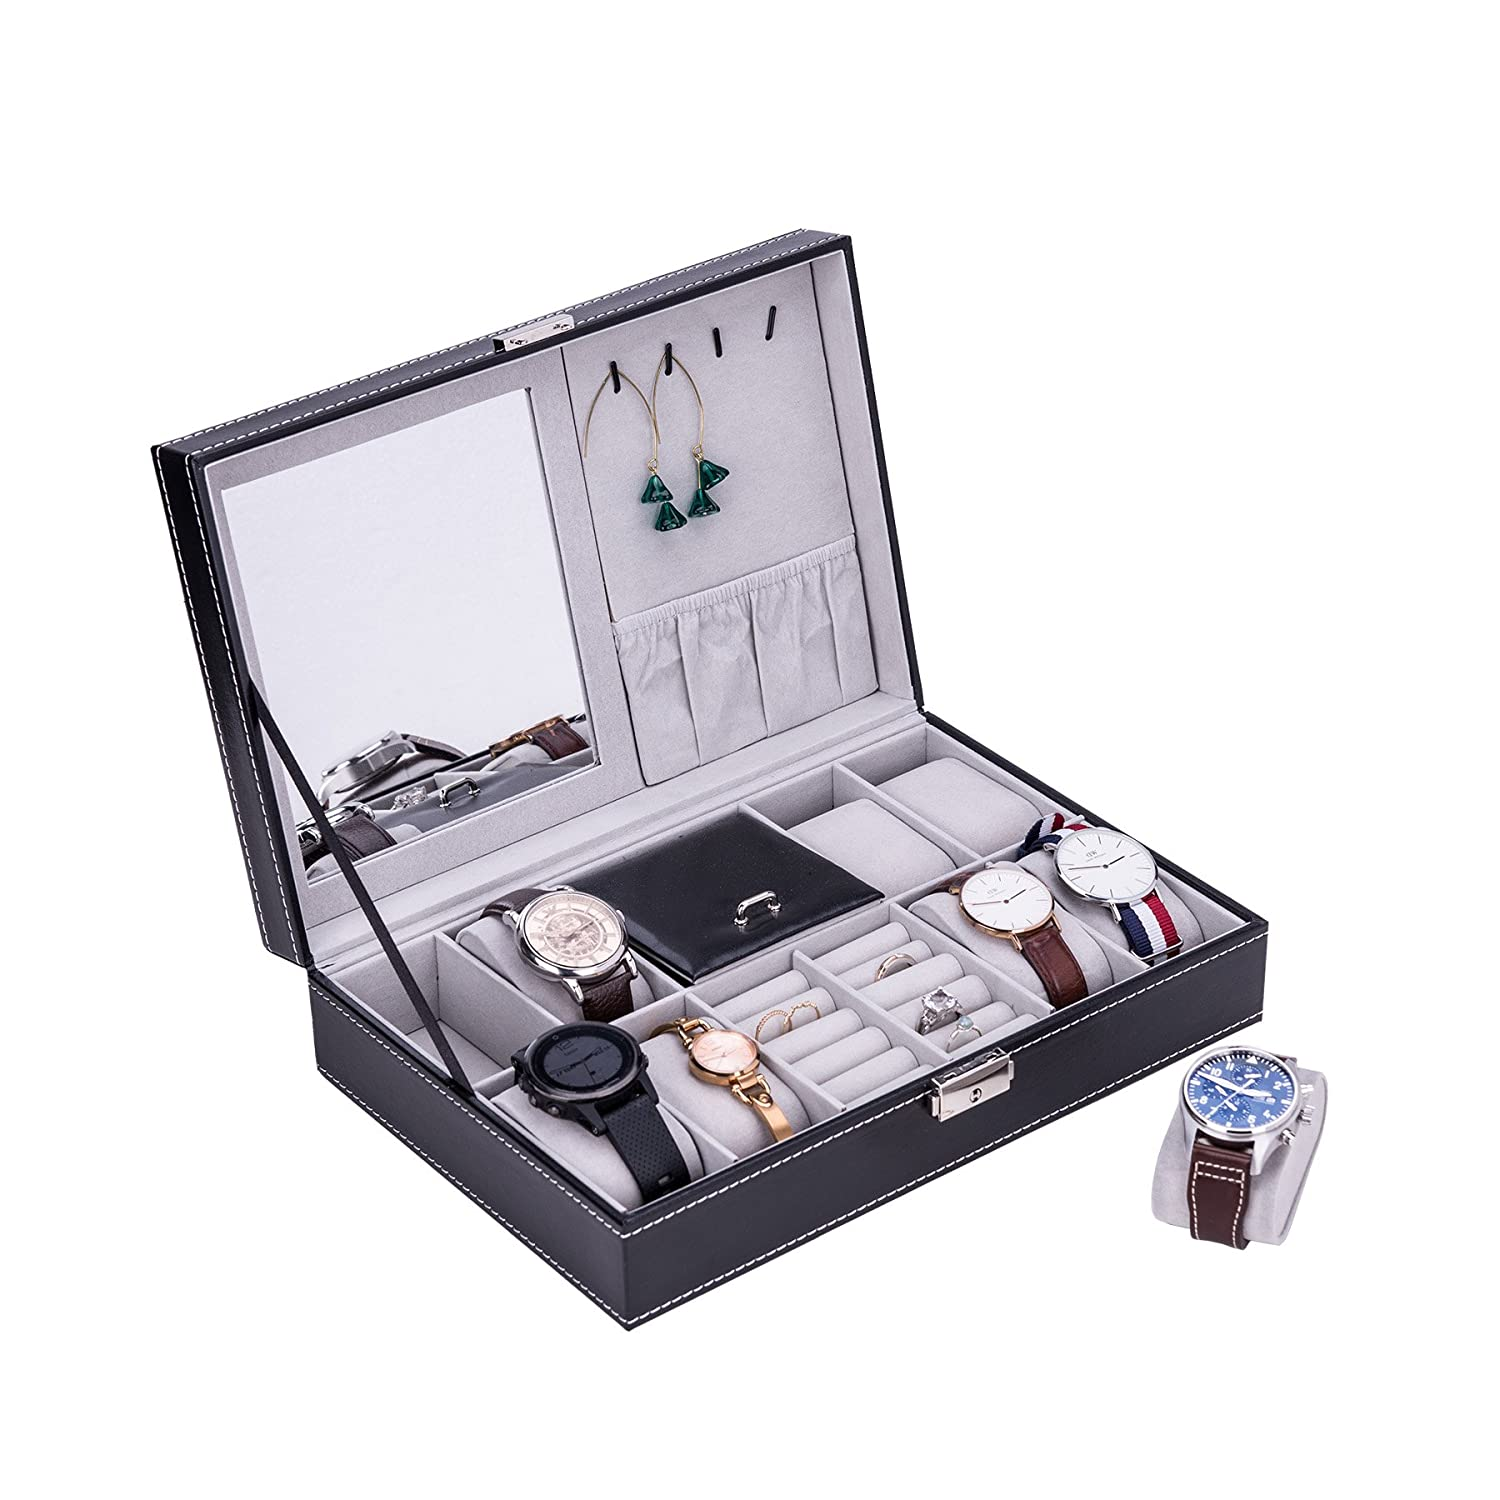 (8 Compartments + Jewellery clips, Watch + Ring + Necklace) CO-Z Black Leather Display Box Jewellery Box Lockable Watch Case (8 Compartments + Jewellery clips, Watch + Ring + Necklace) B074DTJR92 8 Compartments + Jewelry clips Watch + Ring + Necklace Watch + Ring + Necklace 8 Compartments + Jewelry clips